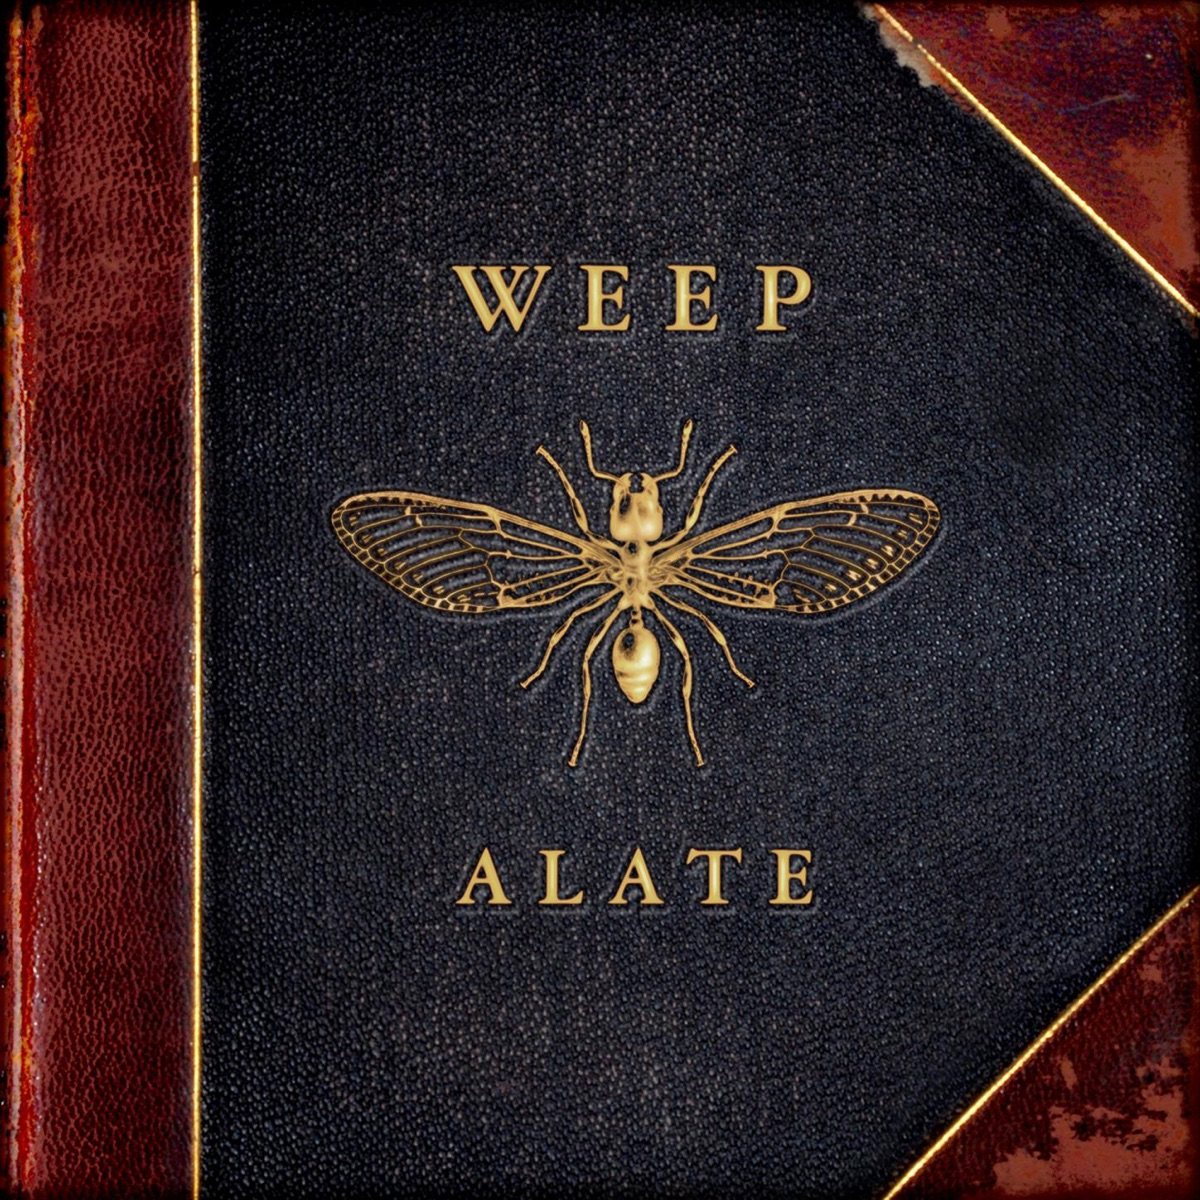 Alate WEEP CD cover